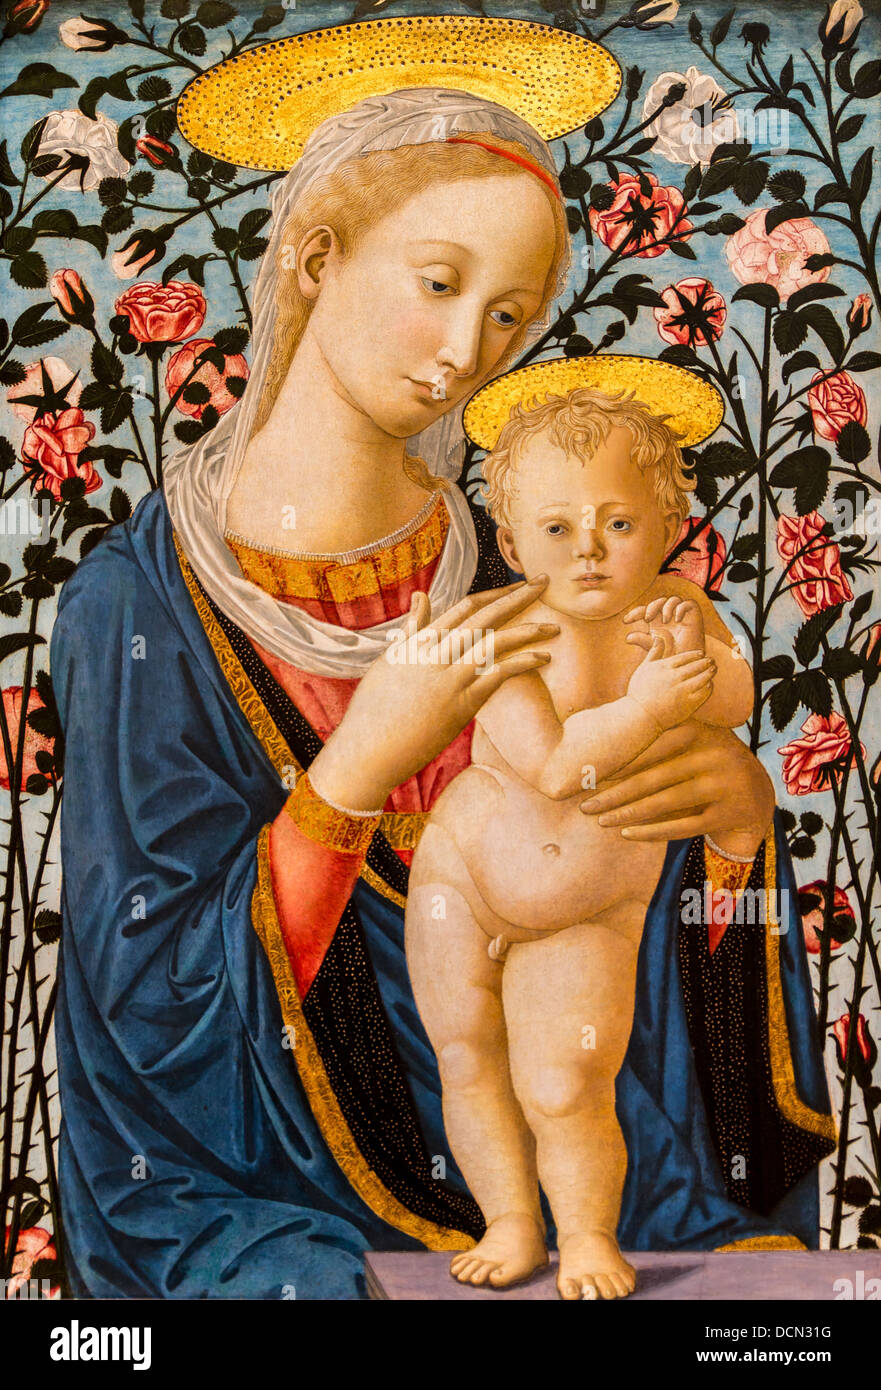 15th century  -  Madonna and Child, 1470 Workshop of Fra Filippo Lippi Philippe Sauvan-Magnet / Active Museum - Stock Image